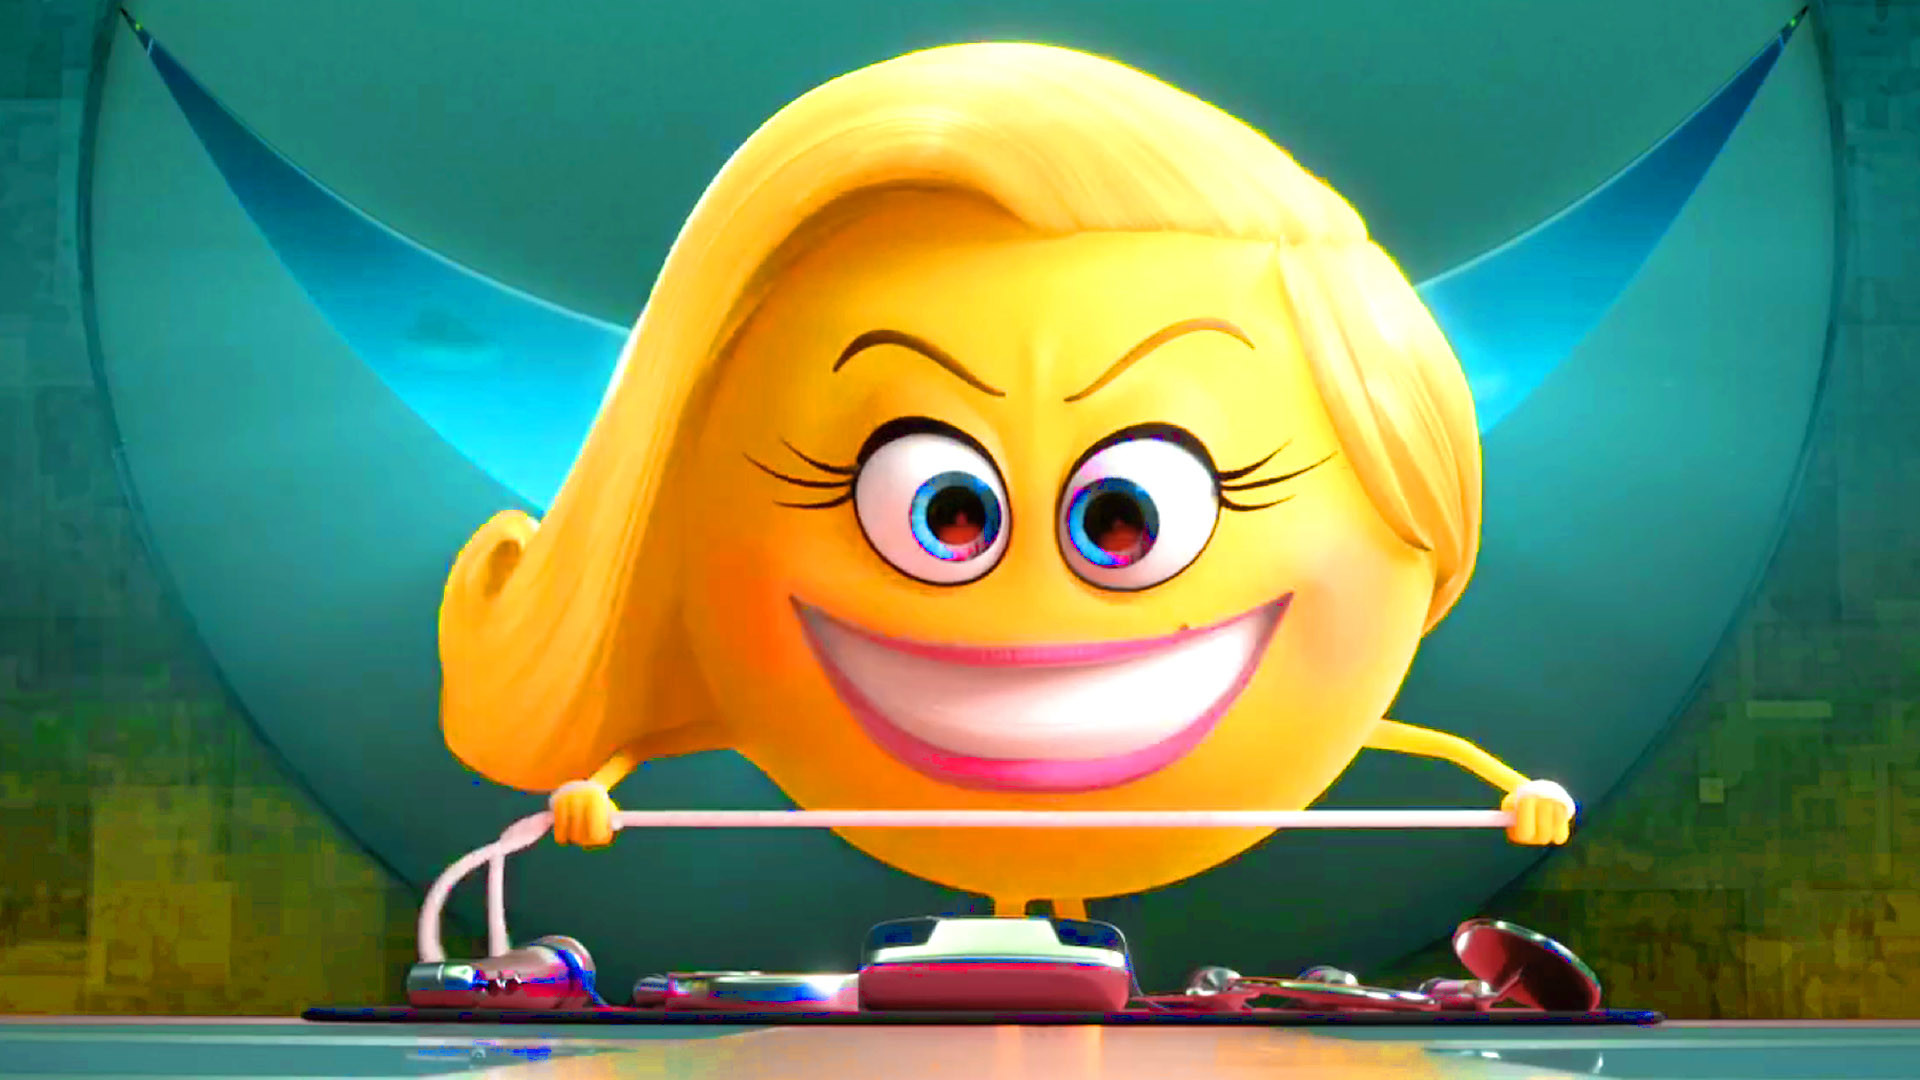 All Movie Posters and Prints for The Emoji Movie JoBlo Posters 1920×1080